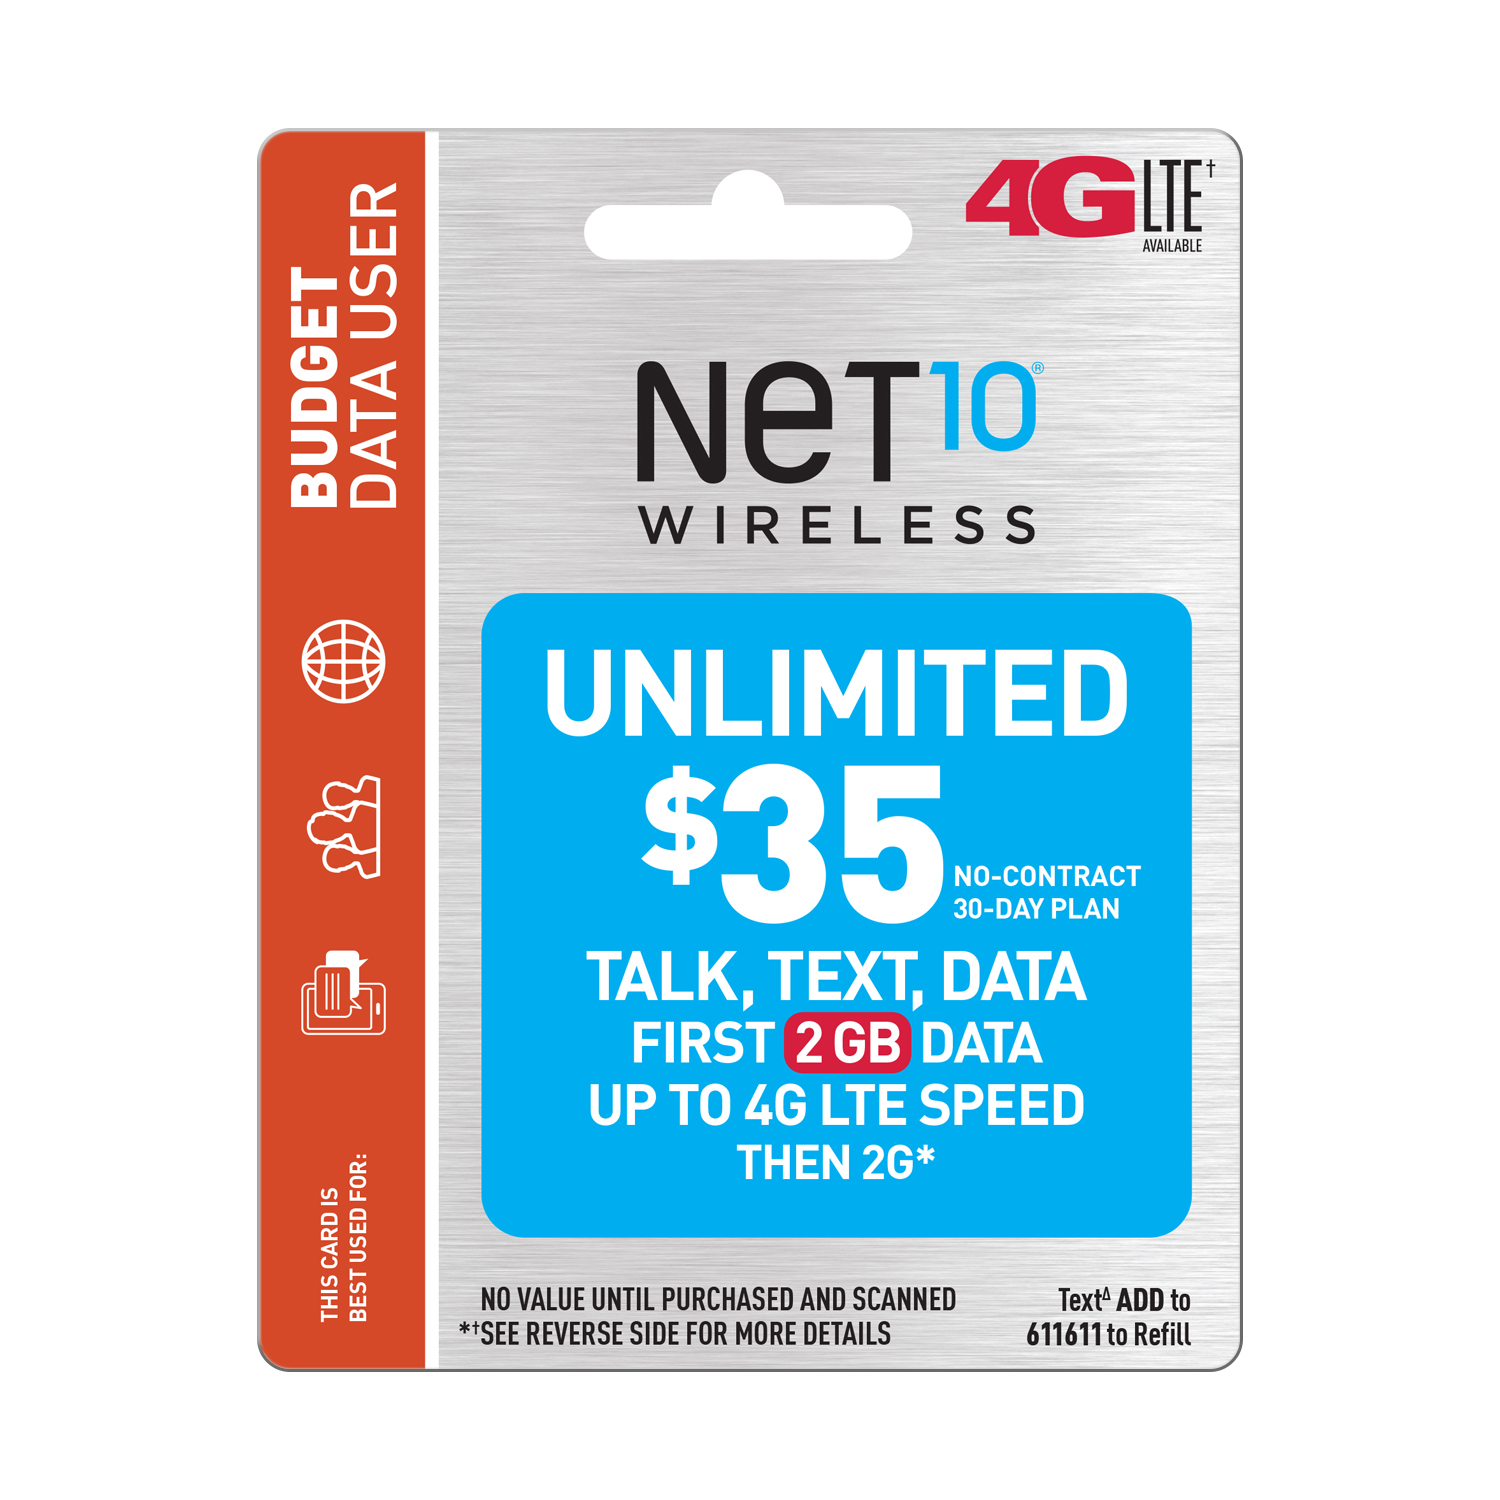 Net10 $35 Unlimited 30 Day Plan (2GB of data at high speed, then 2G*) (Email Delivery)